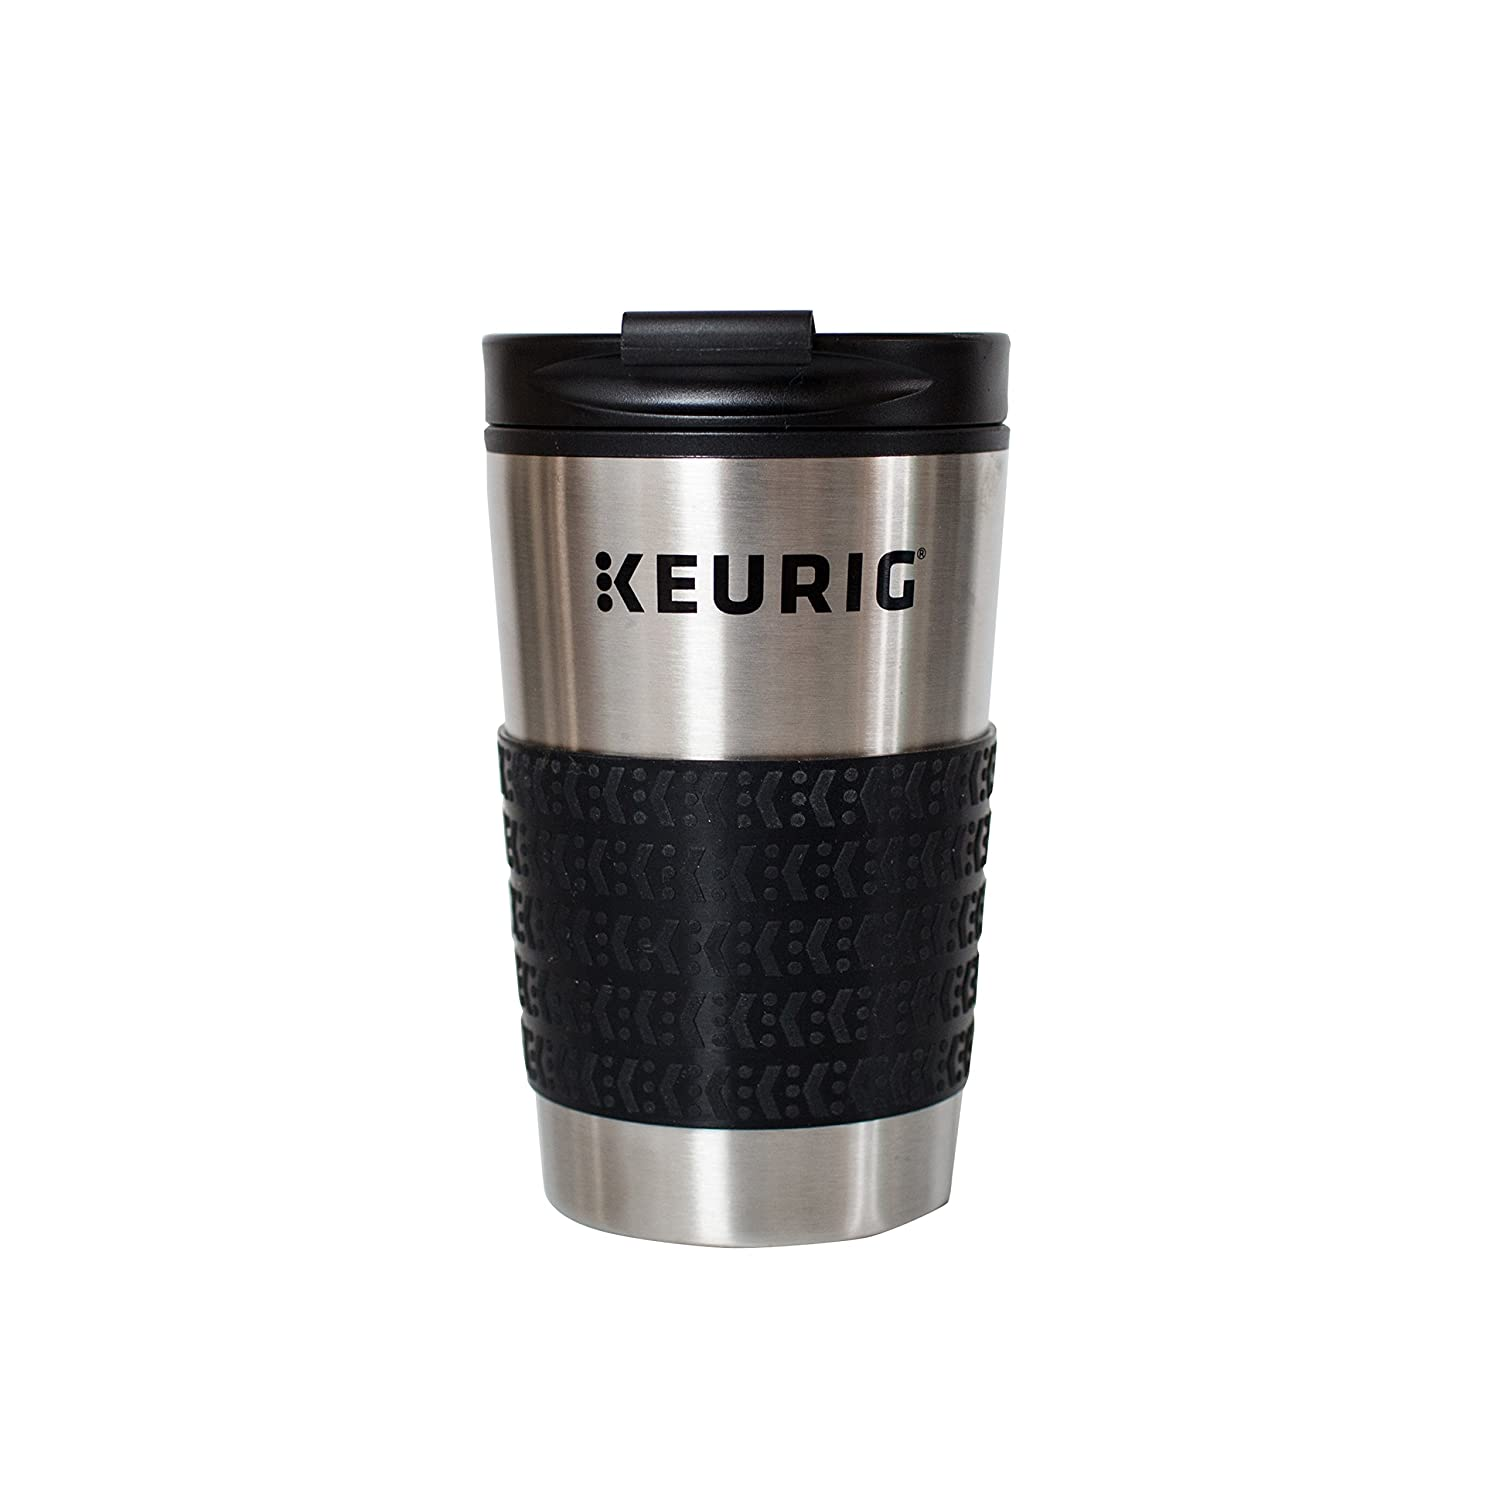 Keurig 12oz Stainless Steel Insulated Coffee Travel Mug, Fits Under Any Keurig K-Cup Pod Coffee Maker (including K-15/K-Mini),Silver